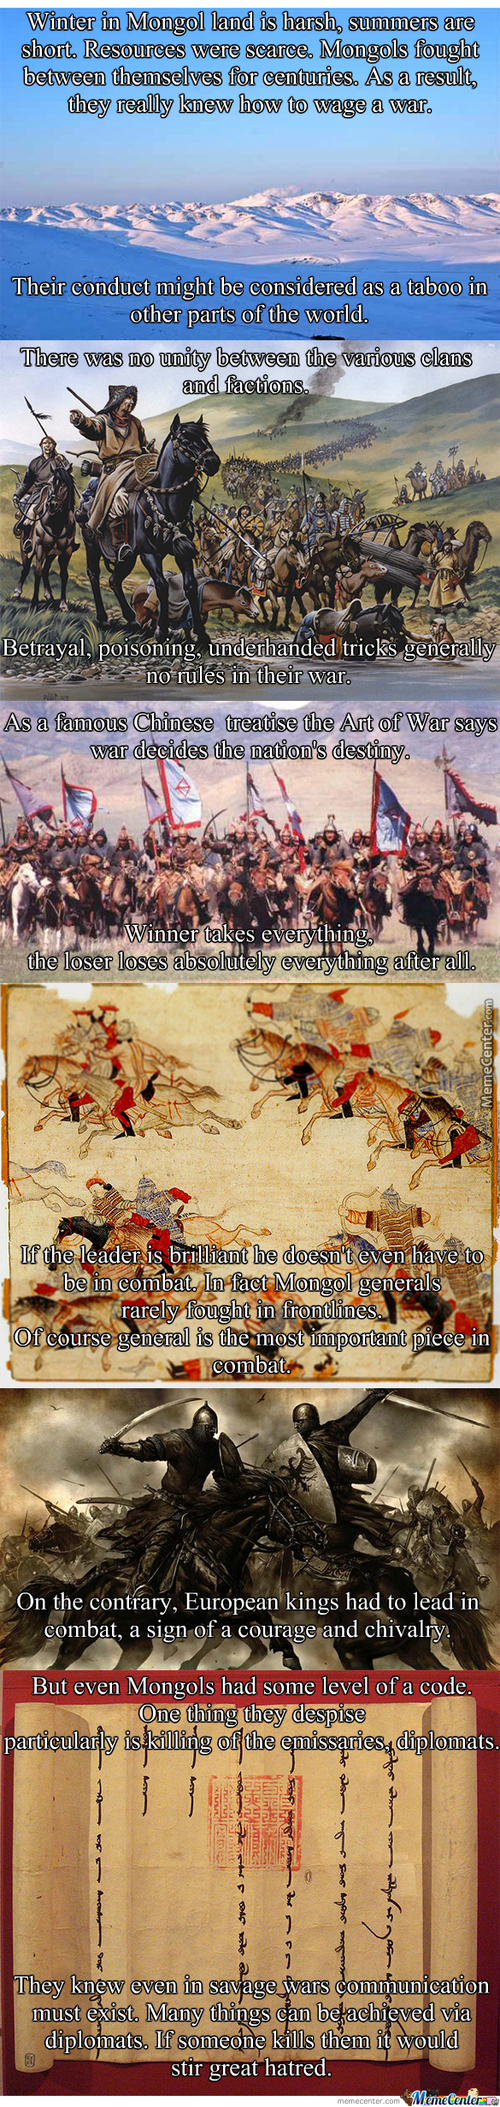 Mongol Facts #2